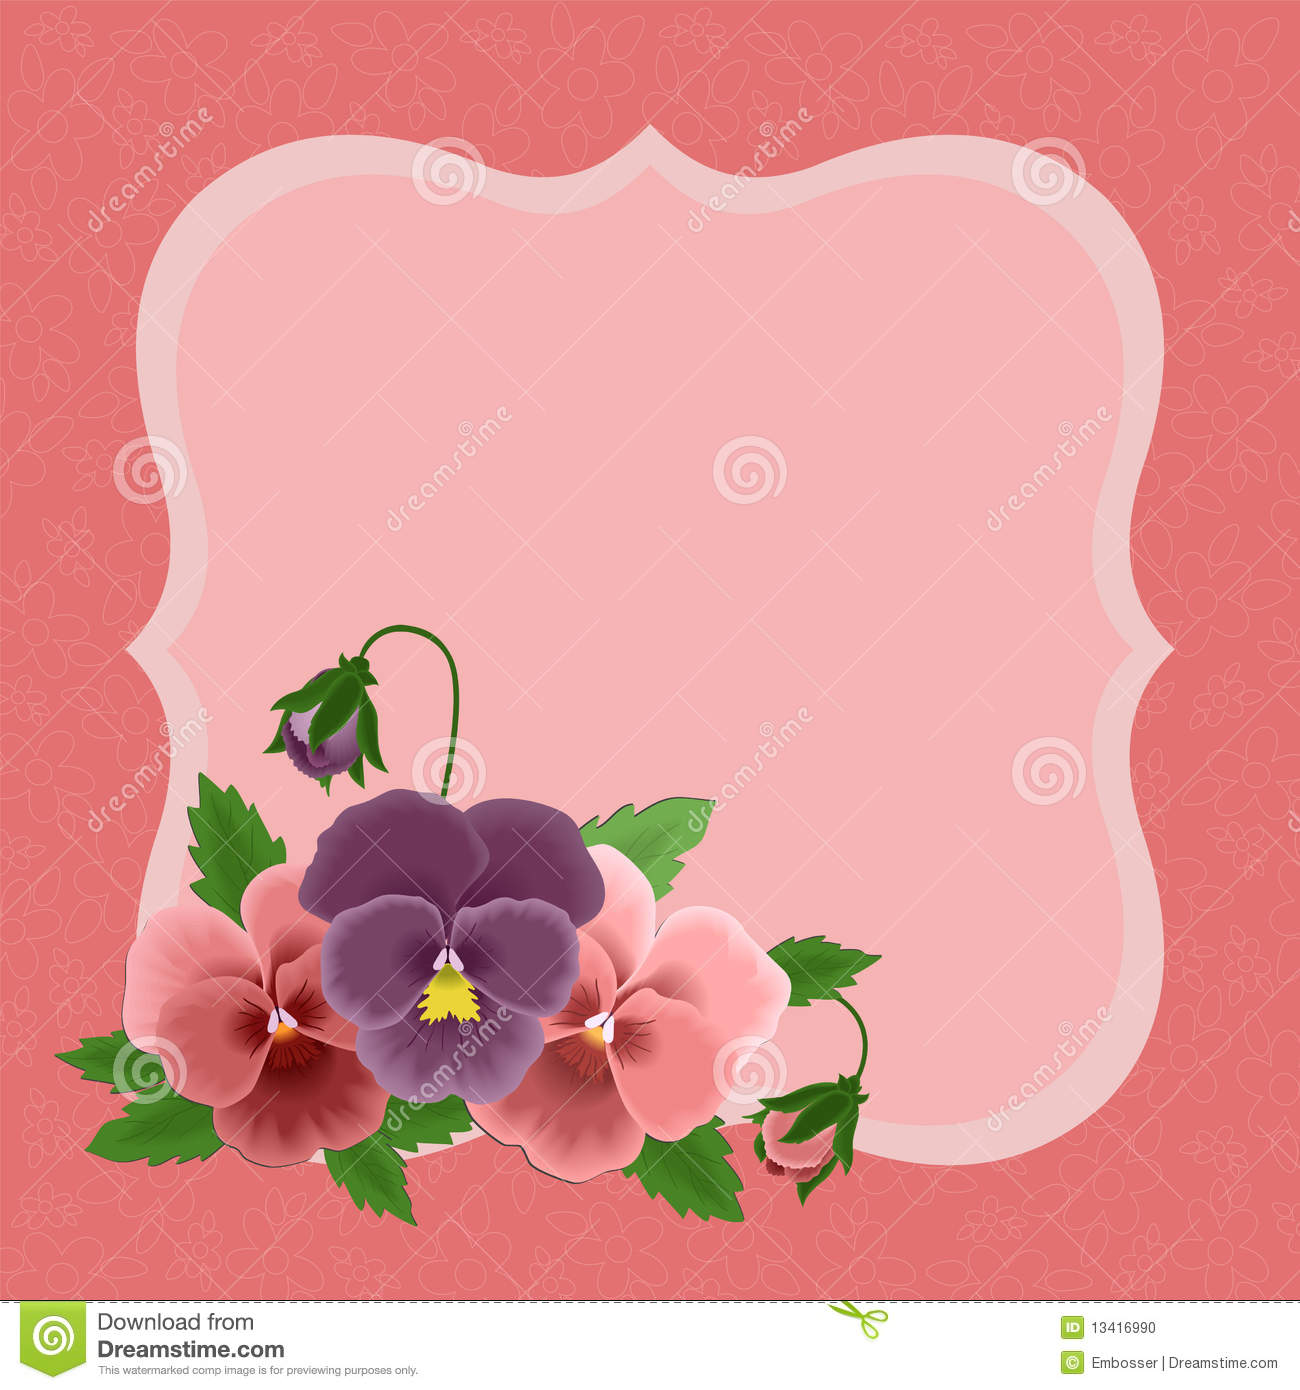 Greetings card for mothers day stock vector illustration of greetings card for mother s day m4hsunfo